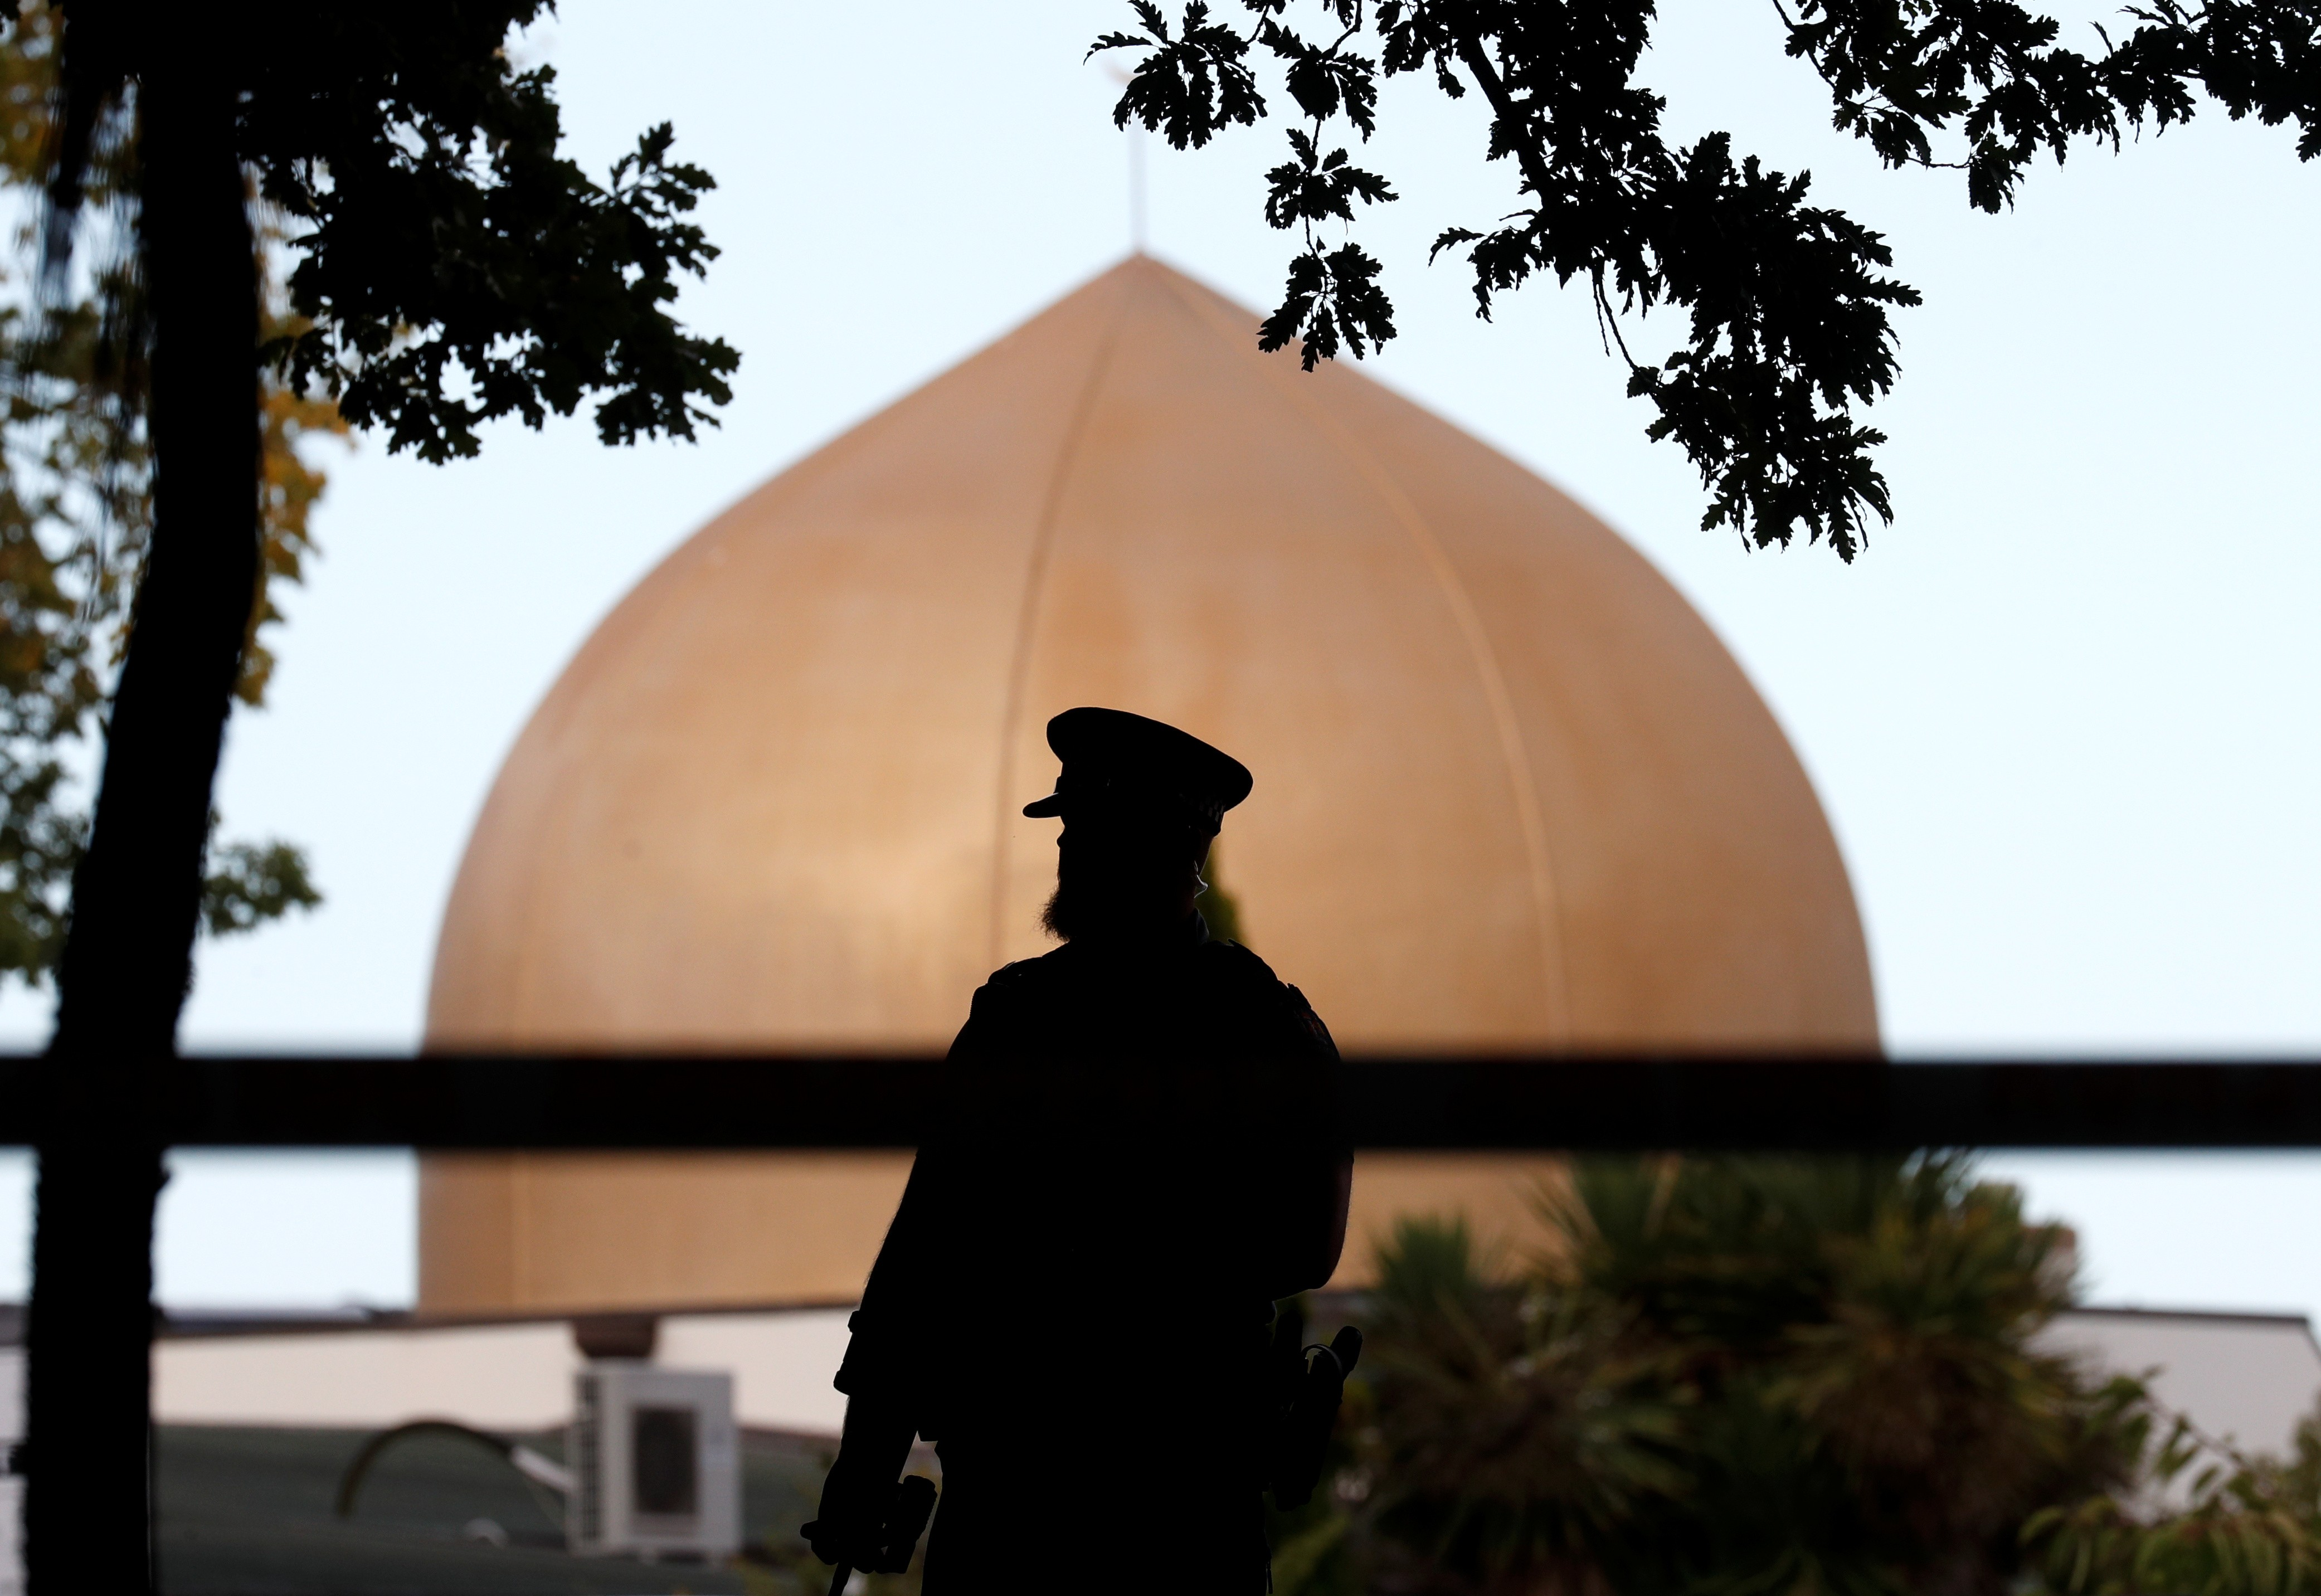 Little Things Matter Exposes Big Threat >> Five Eyes Fail Christchurch Attack Exposes How Little Intelligence